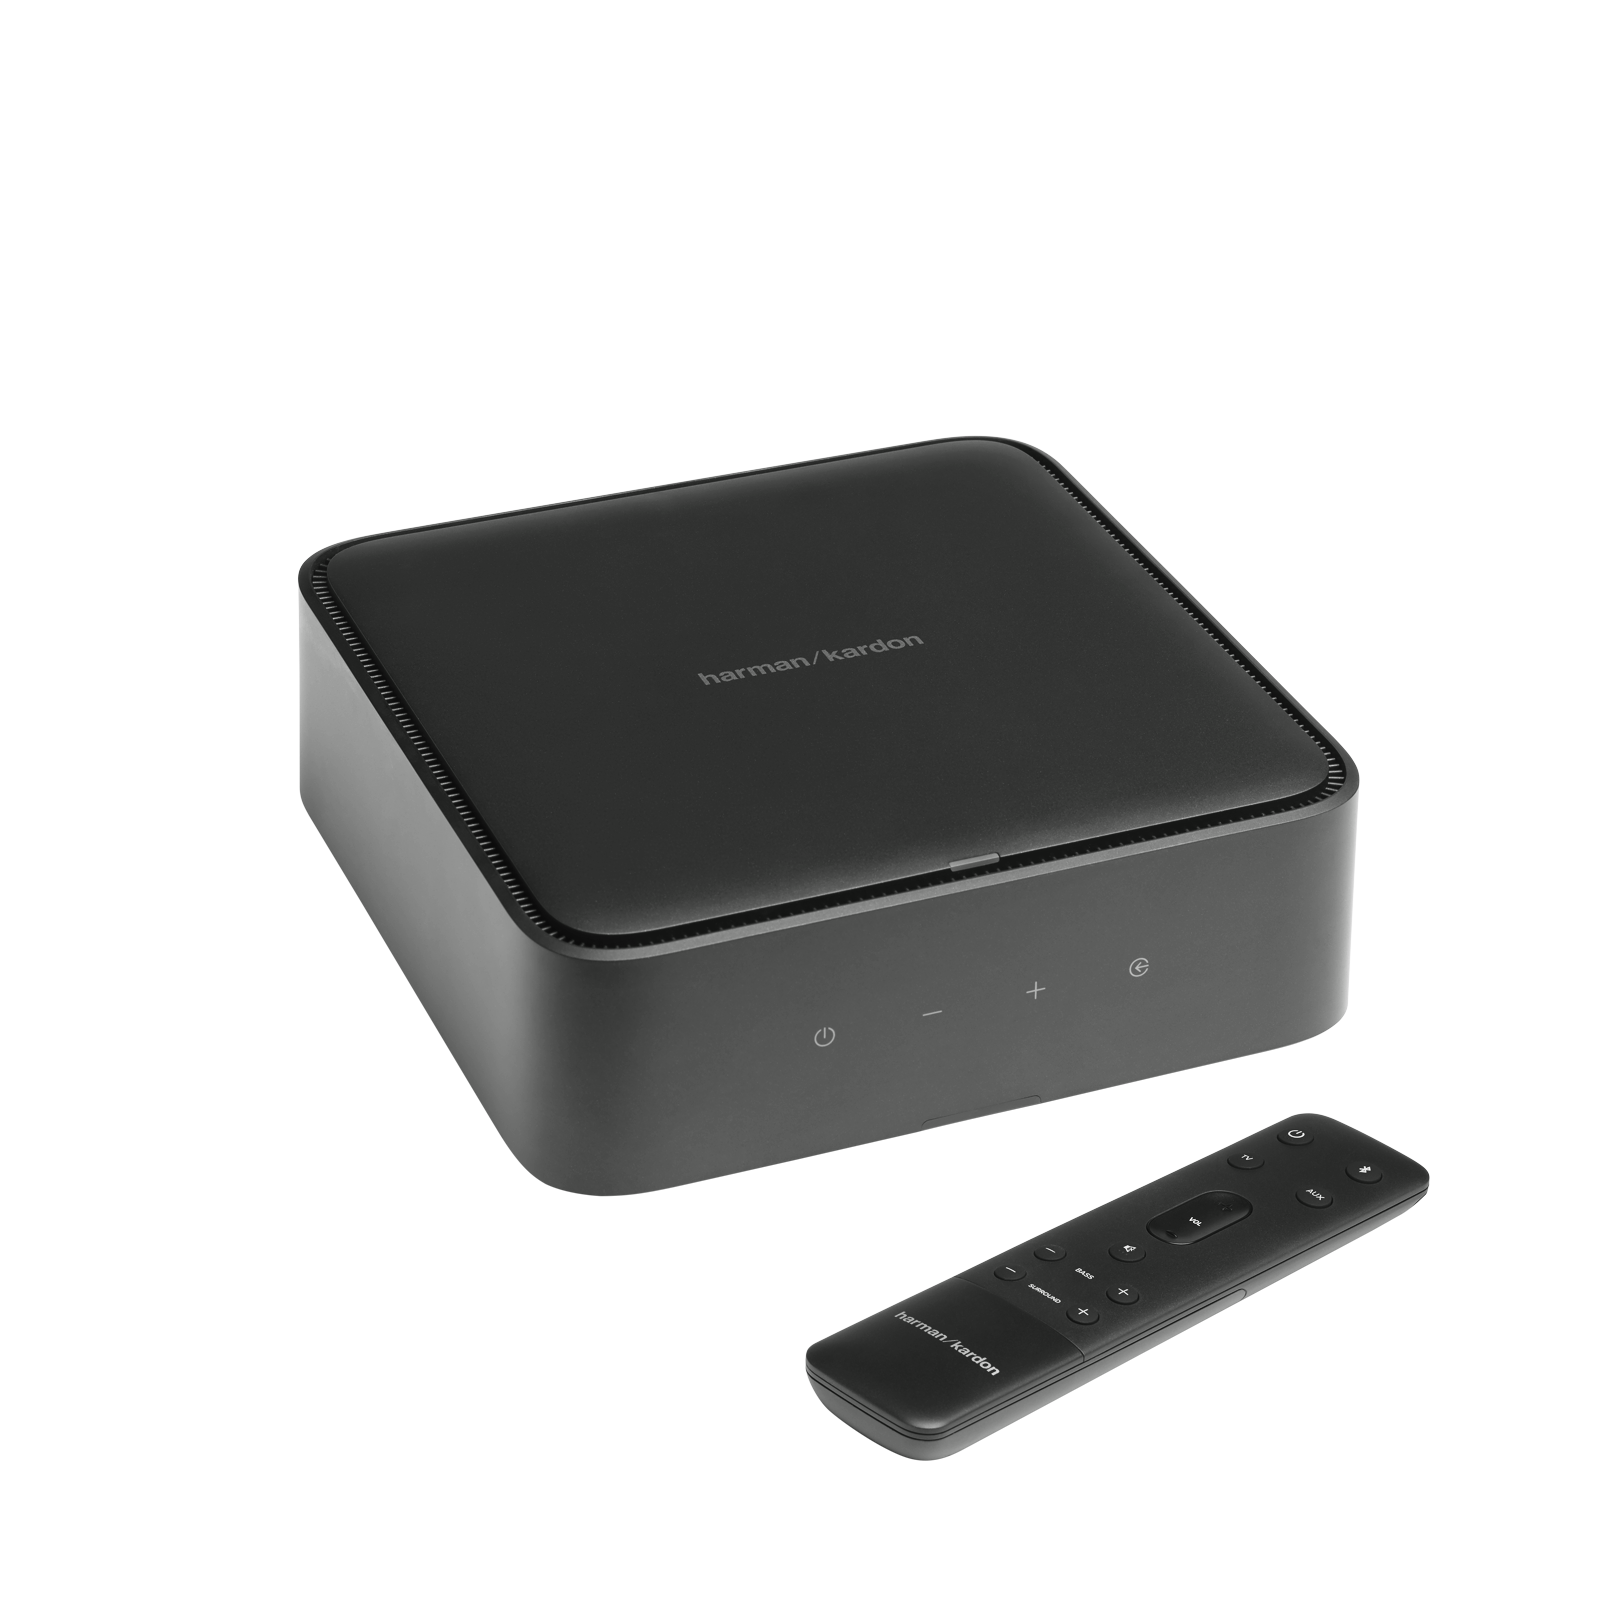 Harman Kardon Citation Amp - Black - High-power, wireless streaming stereo amplifier - Hero